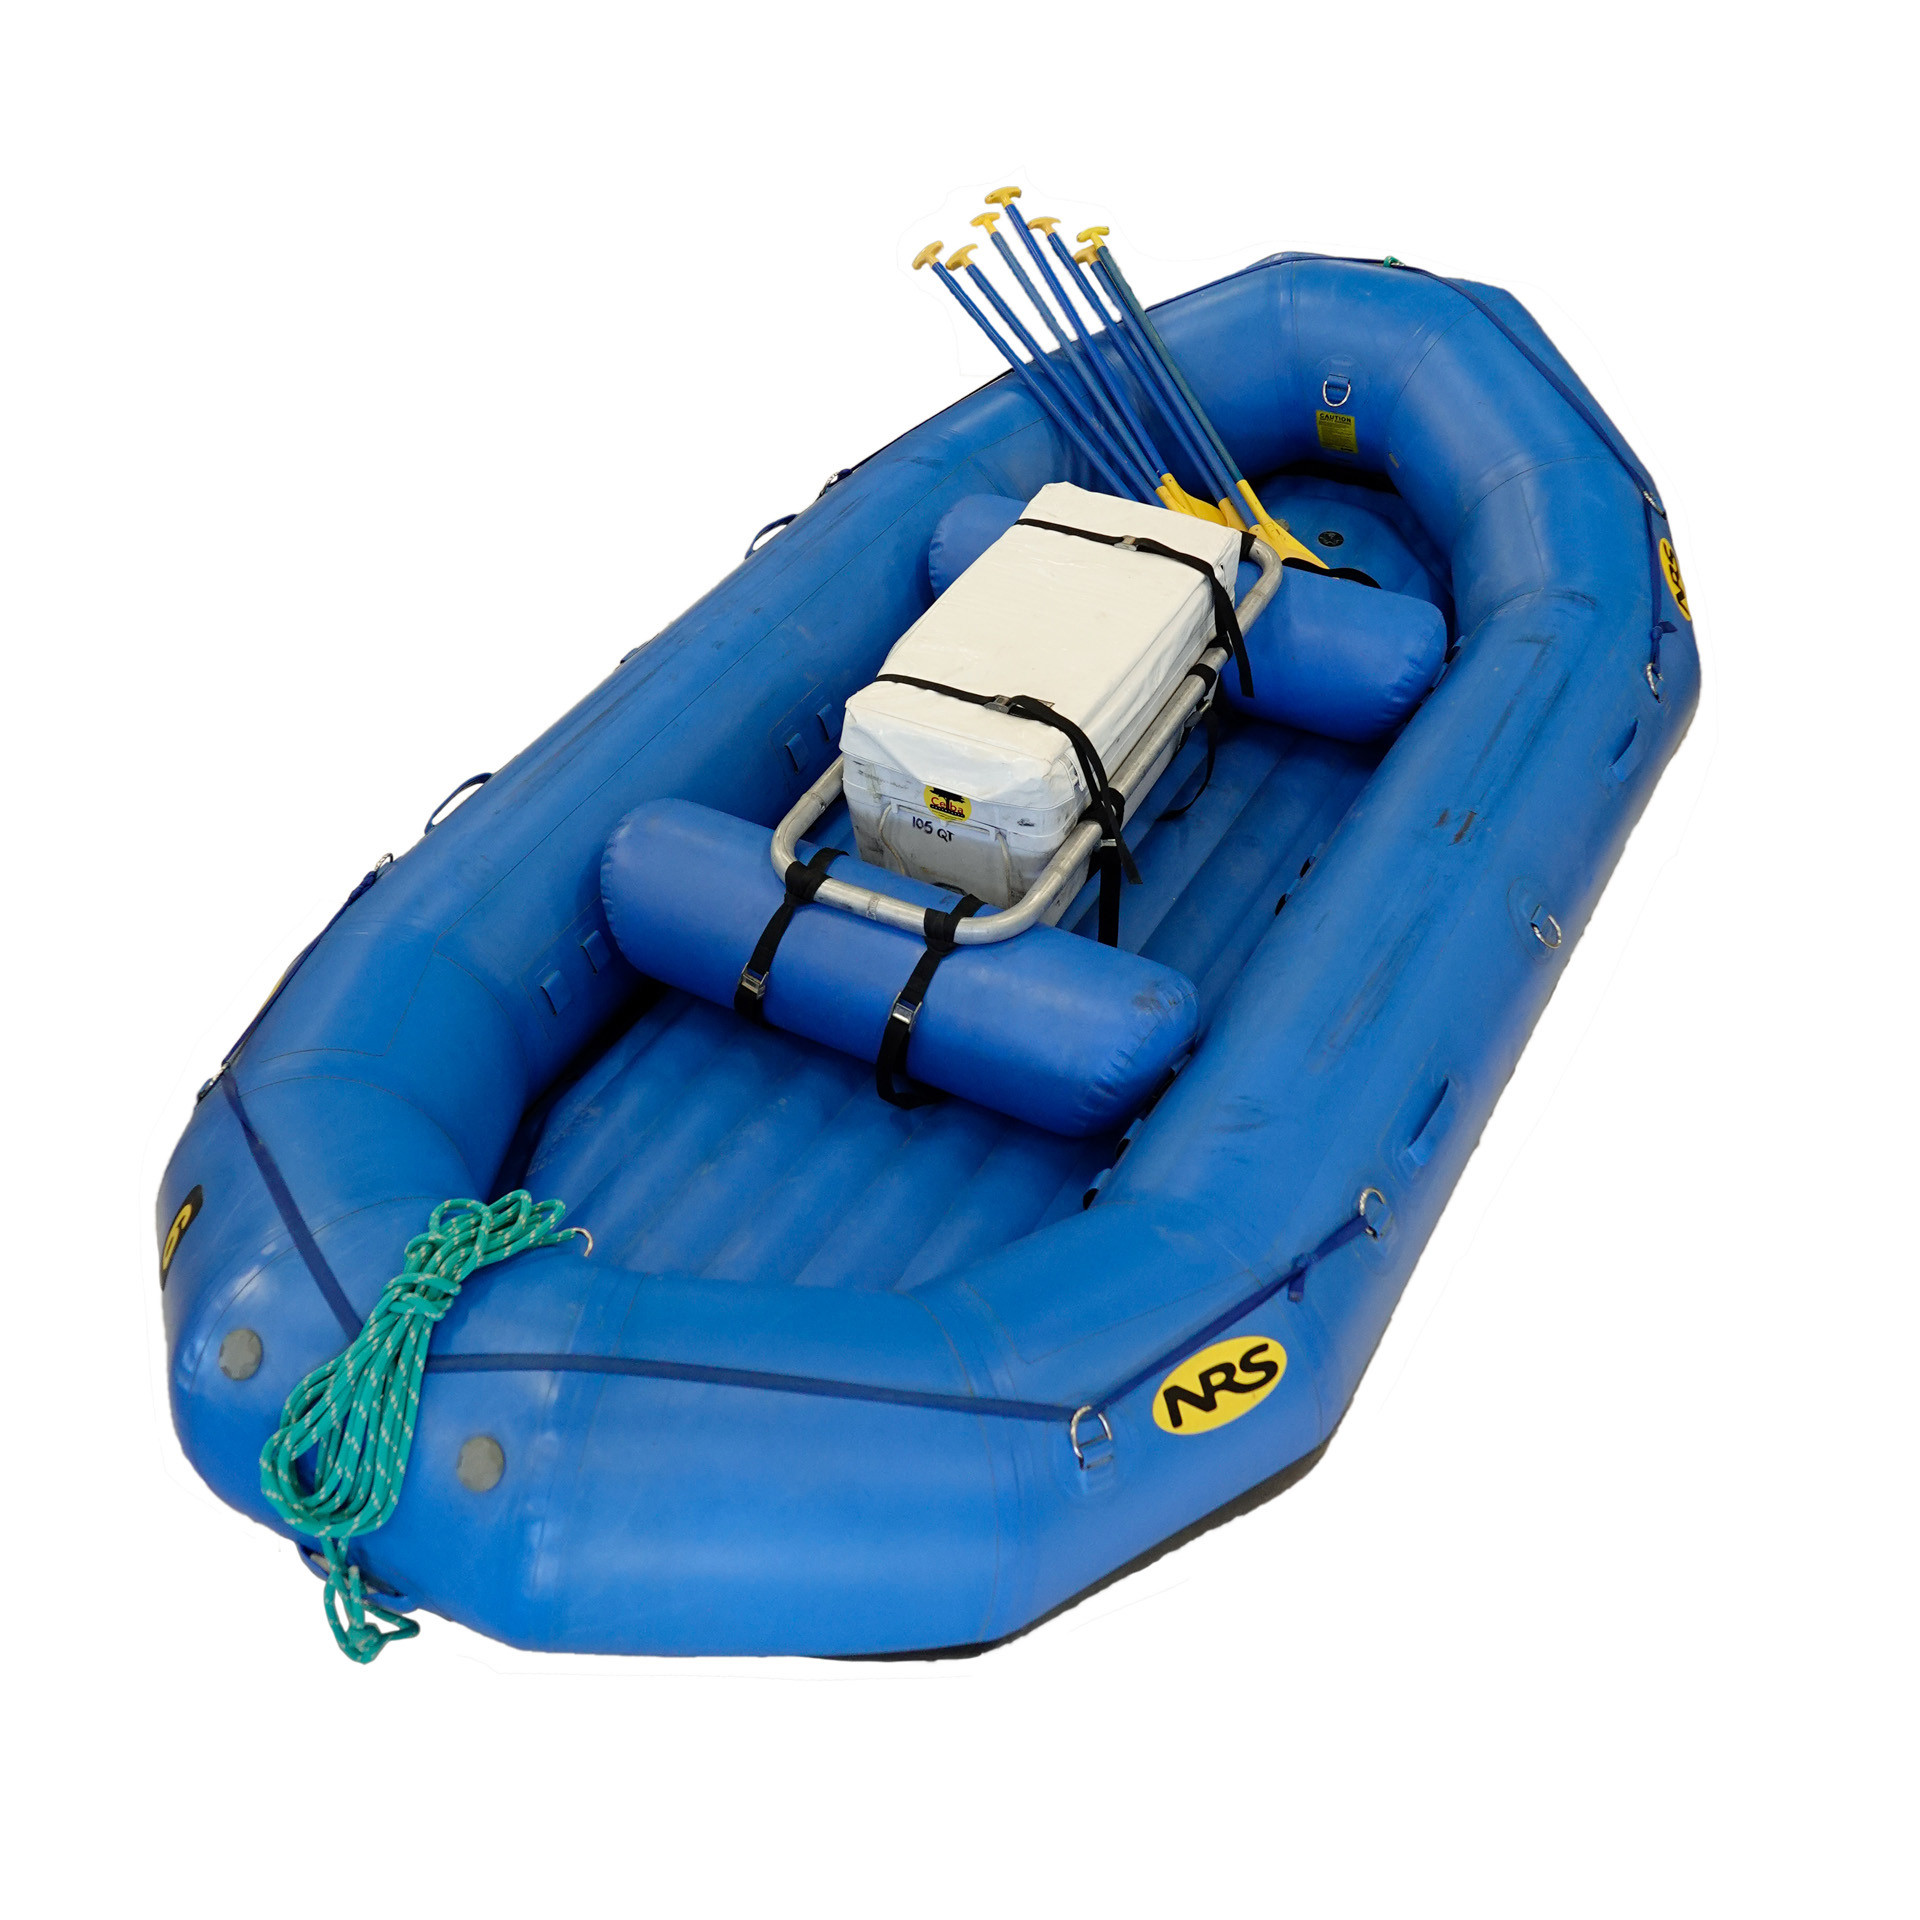 14' Paddle Boat with Cooler